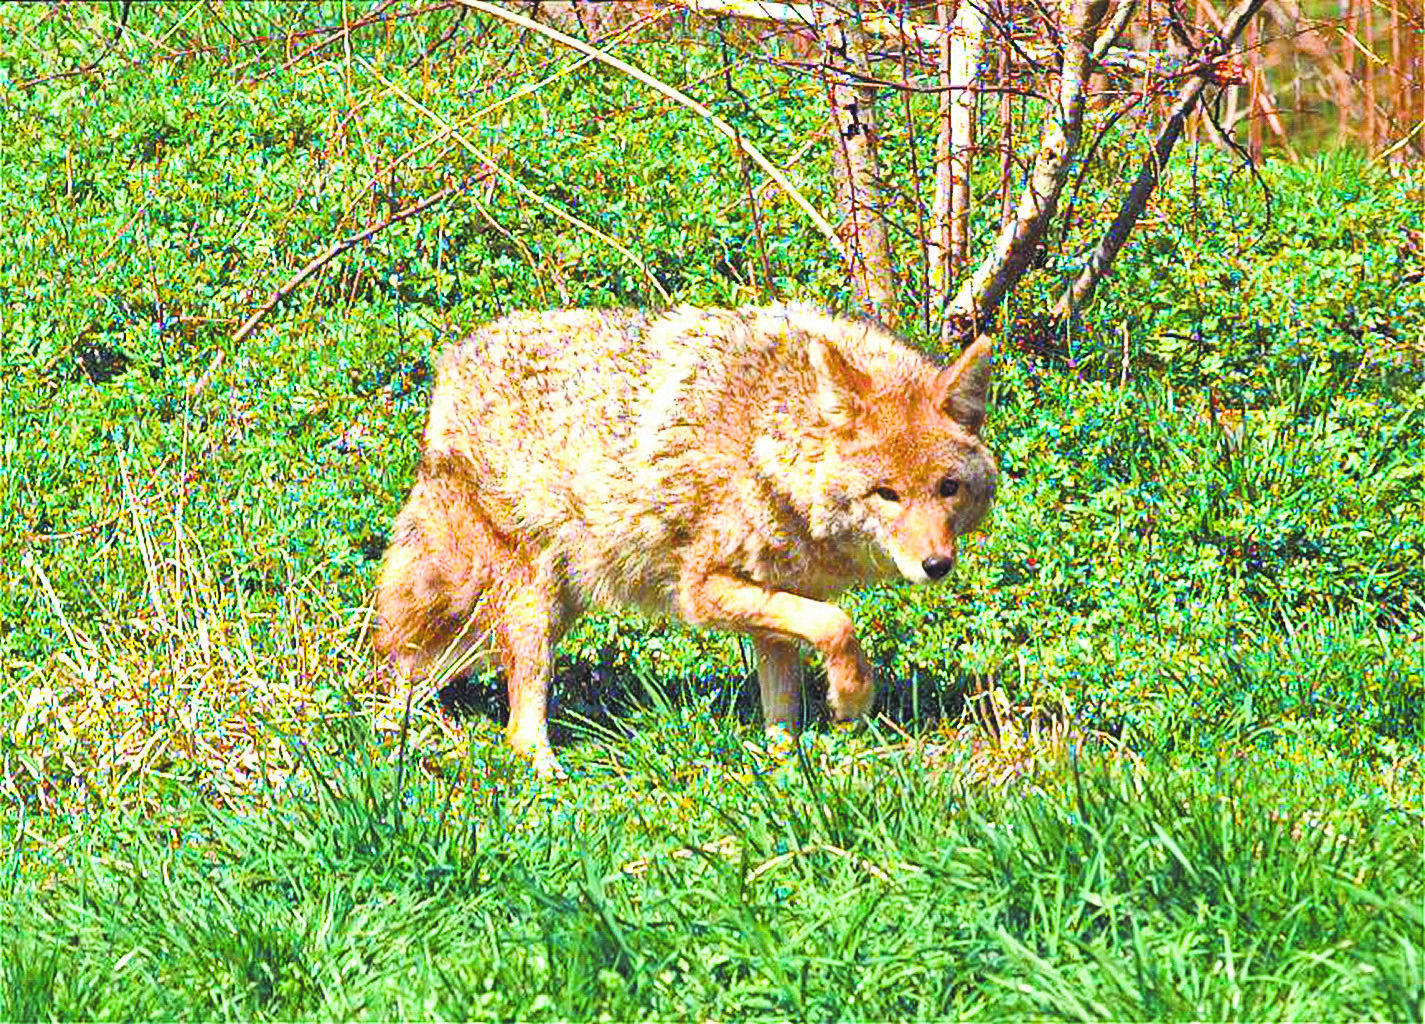 Watch out for coyotes in Central Park, warns NYPD